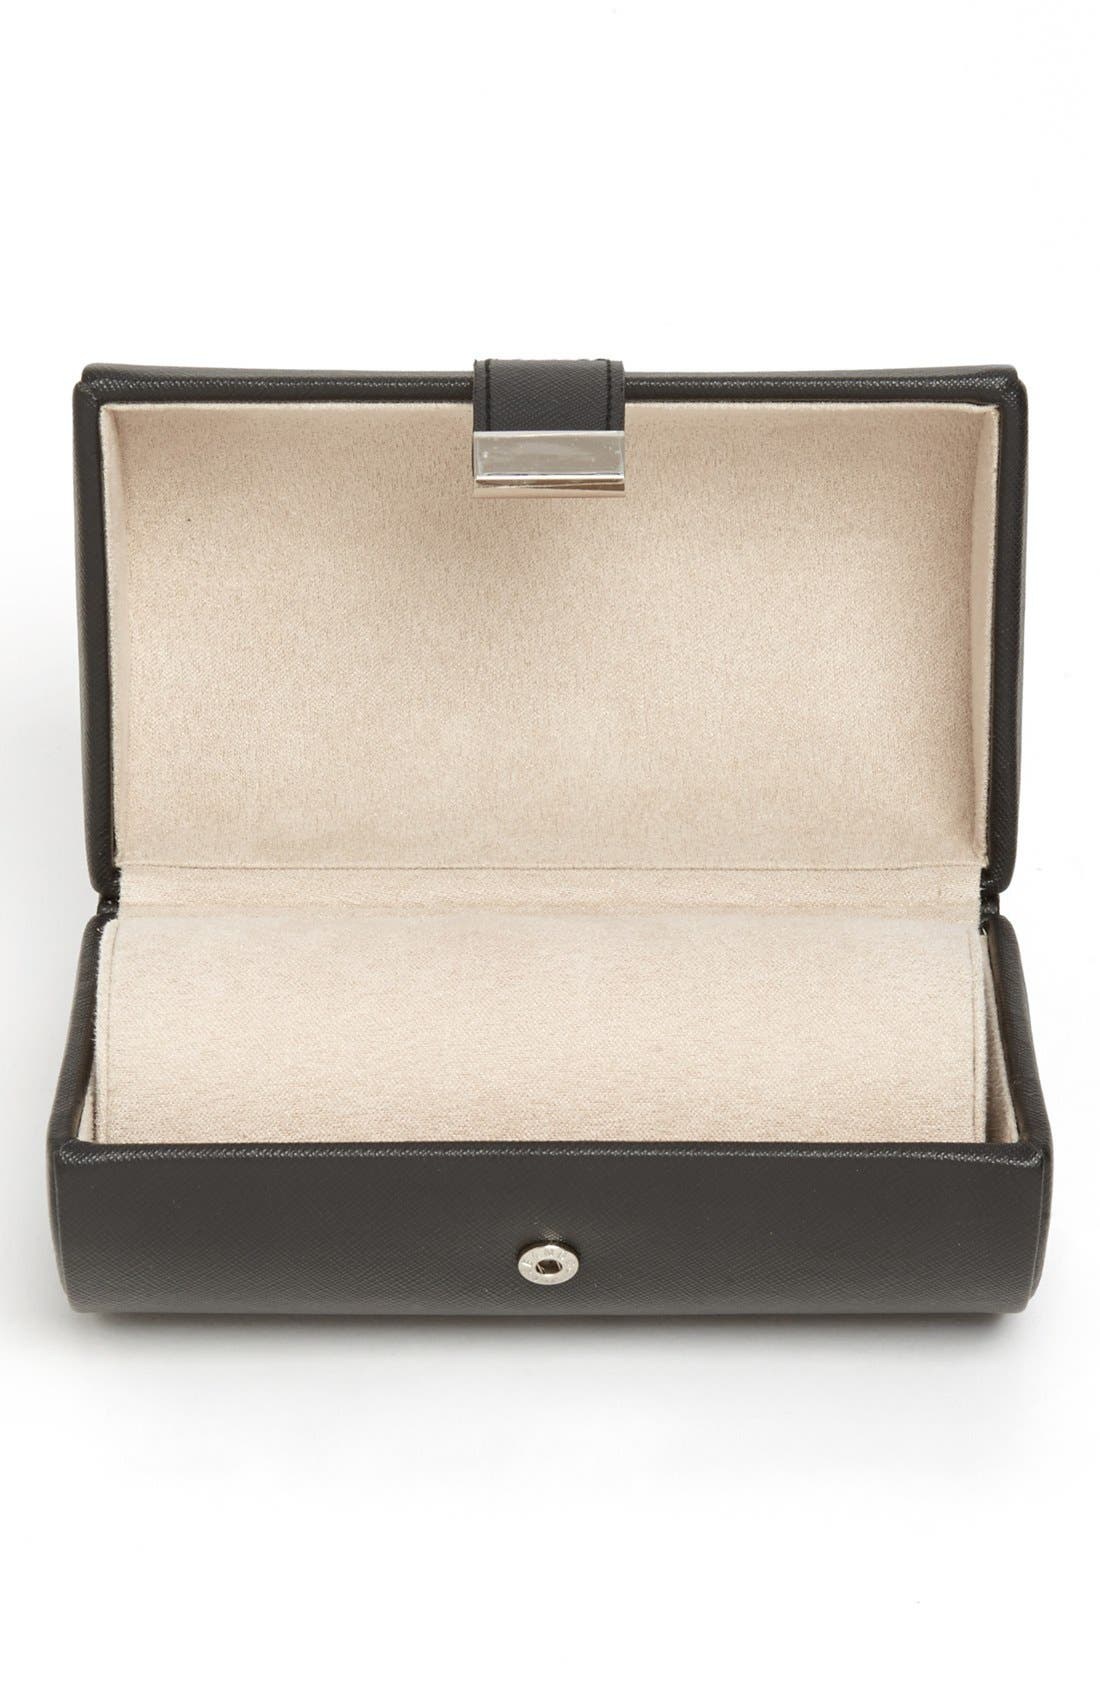 Jewelry Travel Case,                             Alternate thumbnail 2, color,                             001